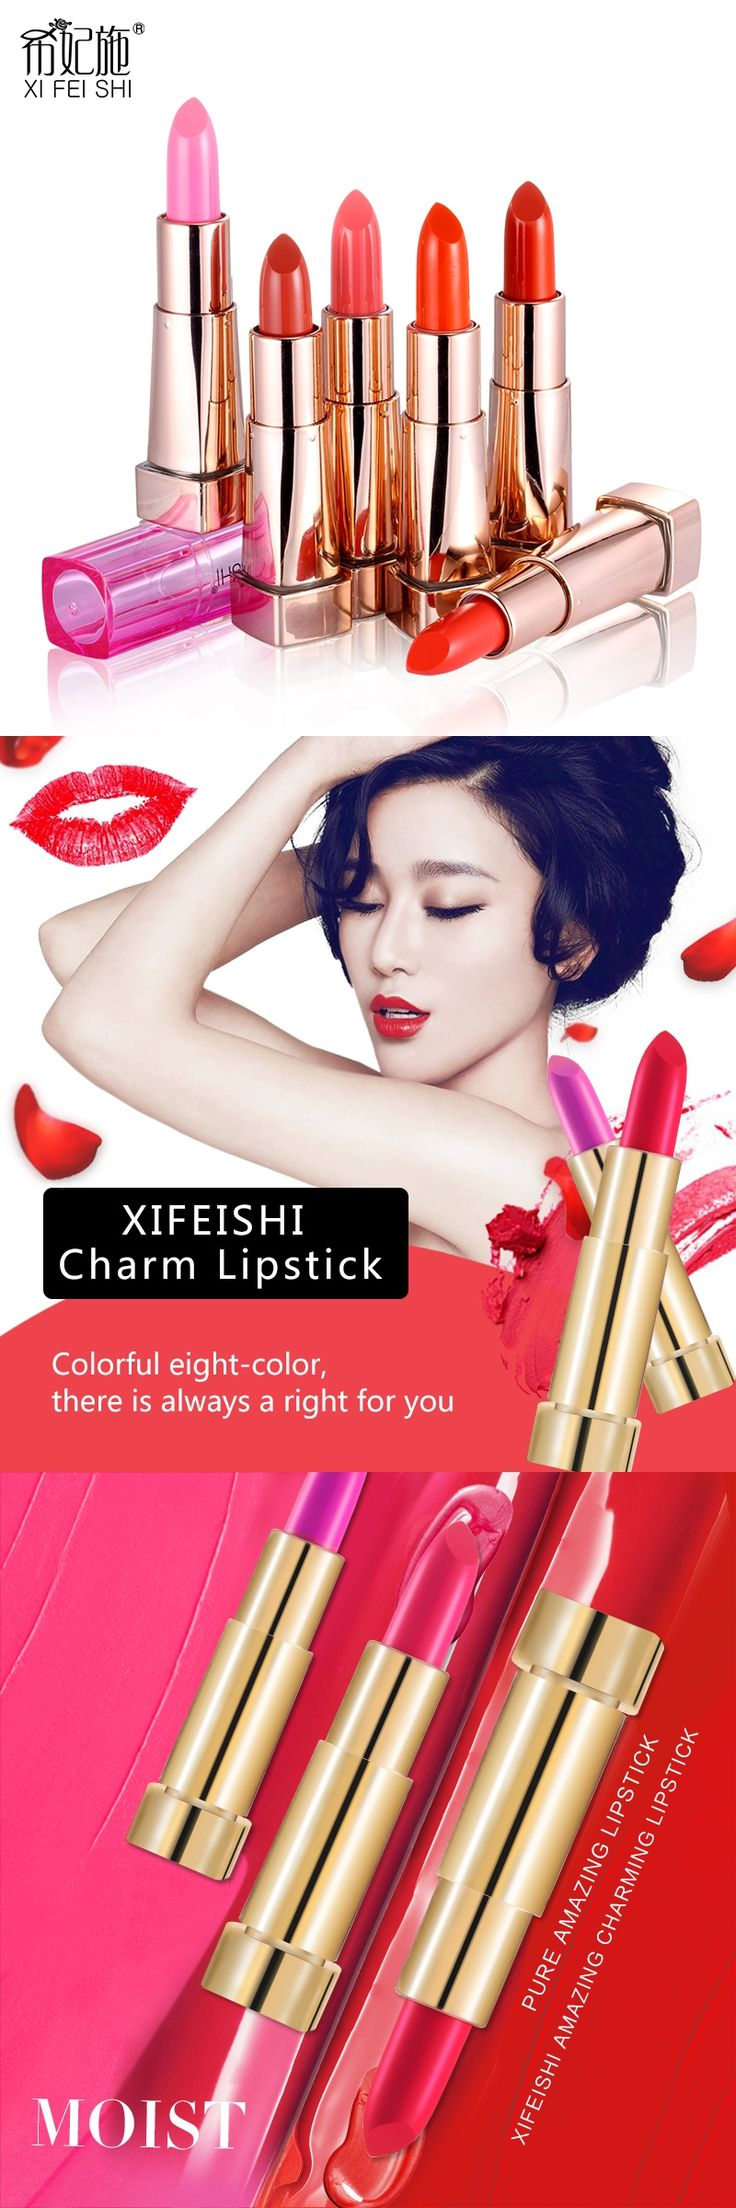 Hot Sale Matte Lipstick XIFEISHI Brand High Quality Waterproof Long Lasting Matte Lipstick Cosmetic Lips Private Custom Lipstick